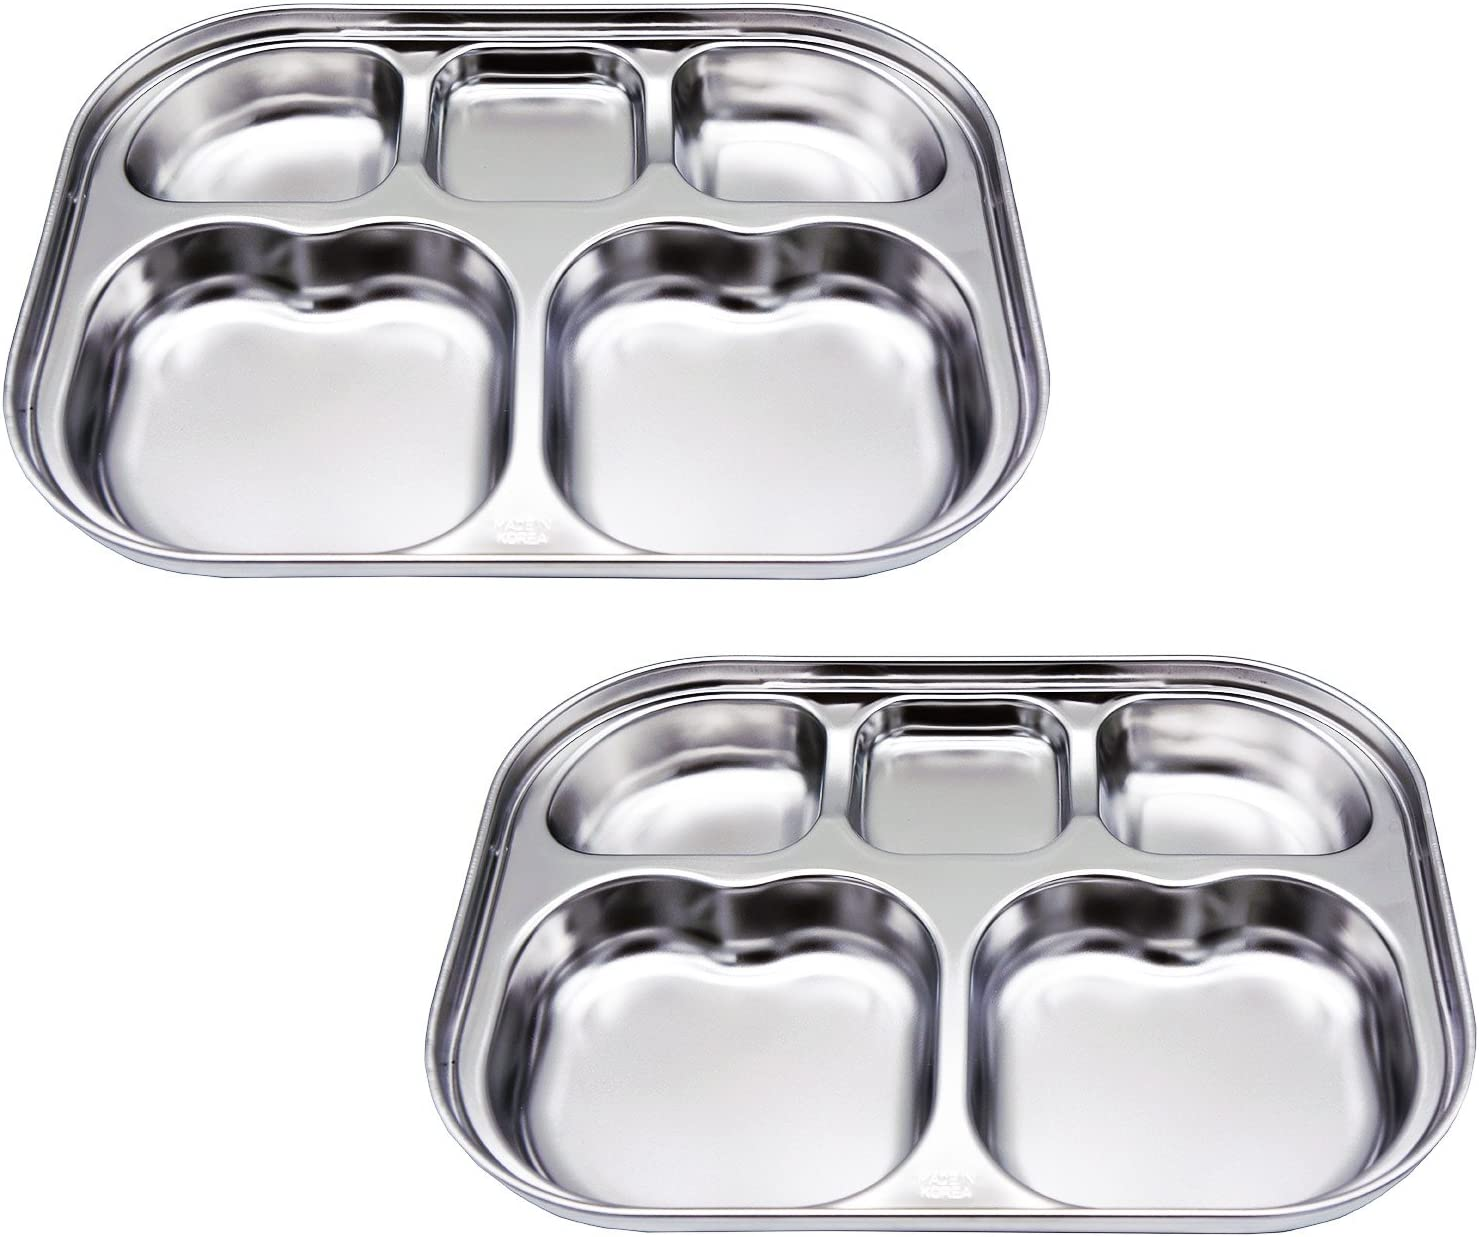 Stainless Steel Divided Plates by KS&E, Kids Toddlers Babies Tray, BPA Free, Diet Food Control, Camping Dishes, Compact Serving Platter, Dinner Snack, 5 Compartment Plate Silver, Set of 2